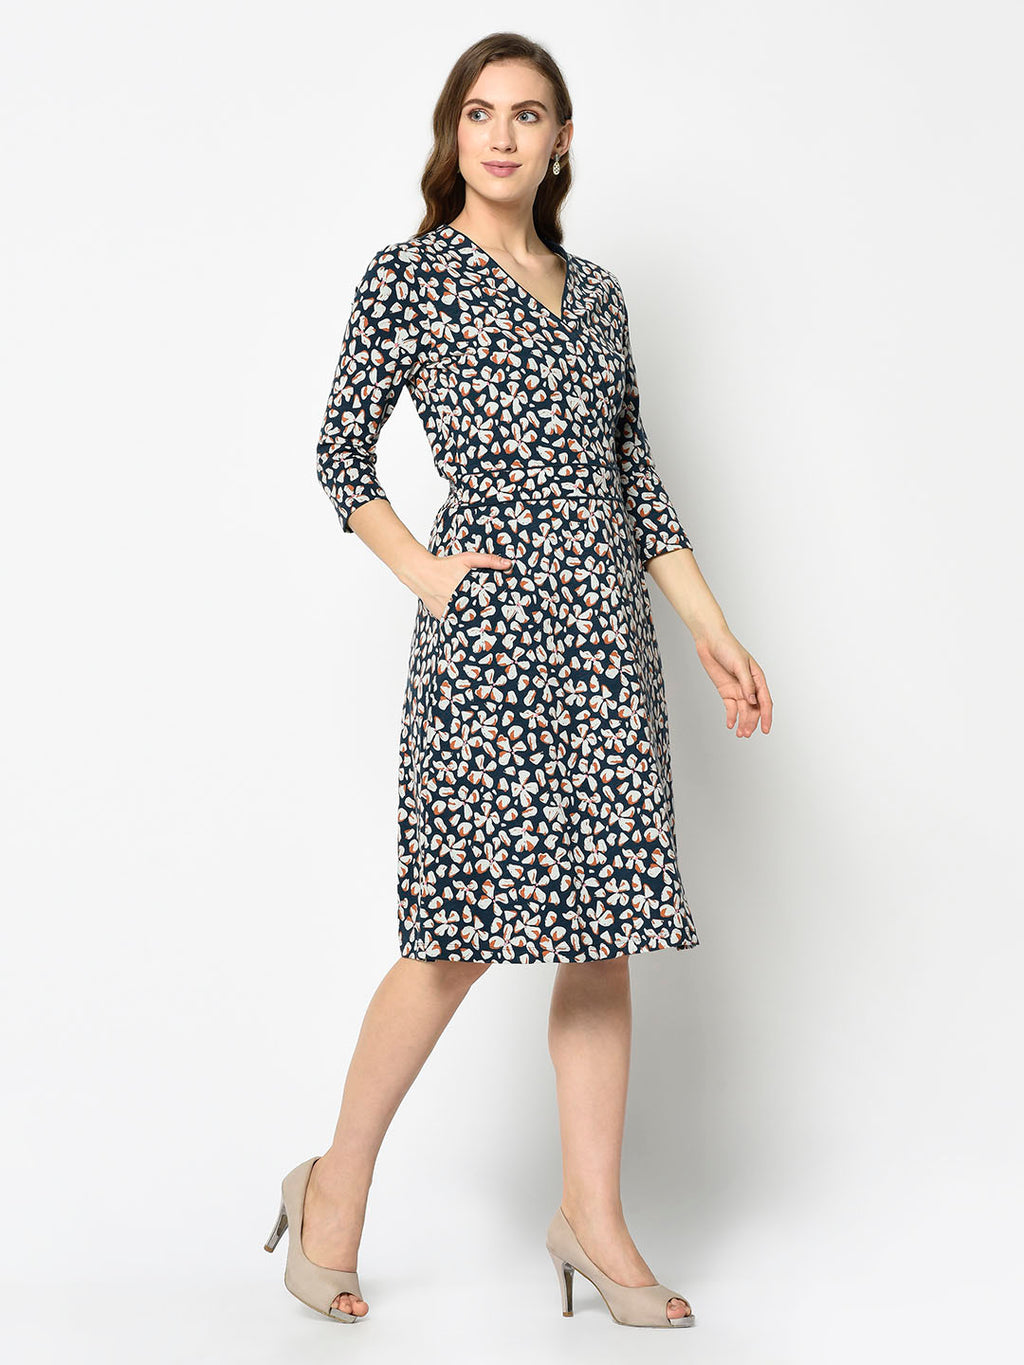 Cider Orange and Charcoal Floral A-line Dress